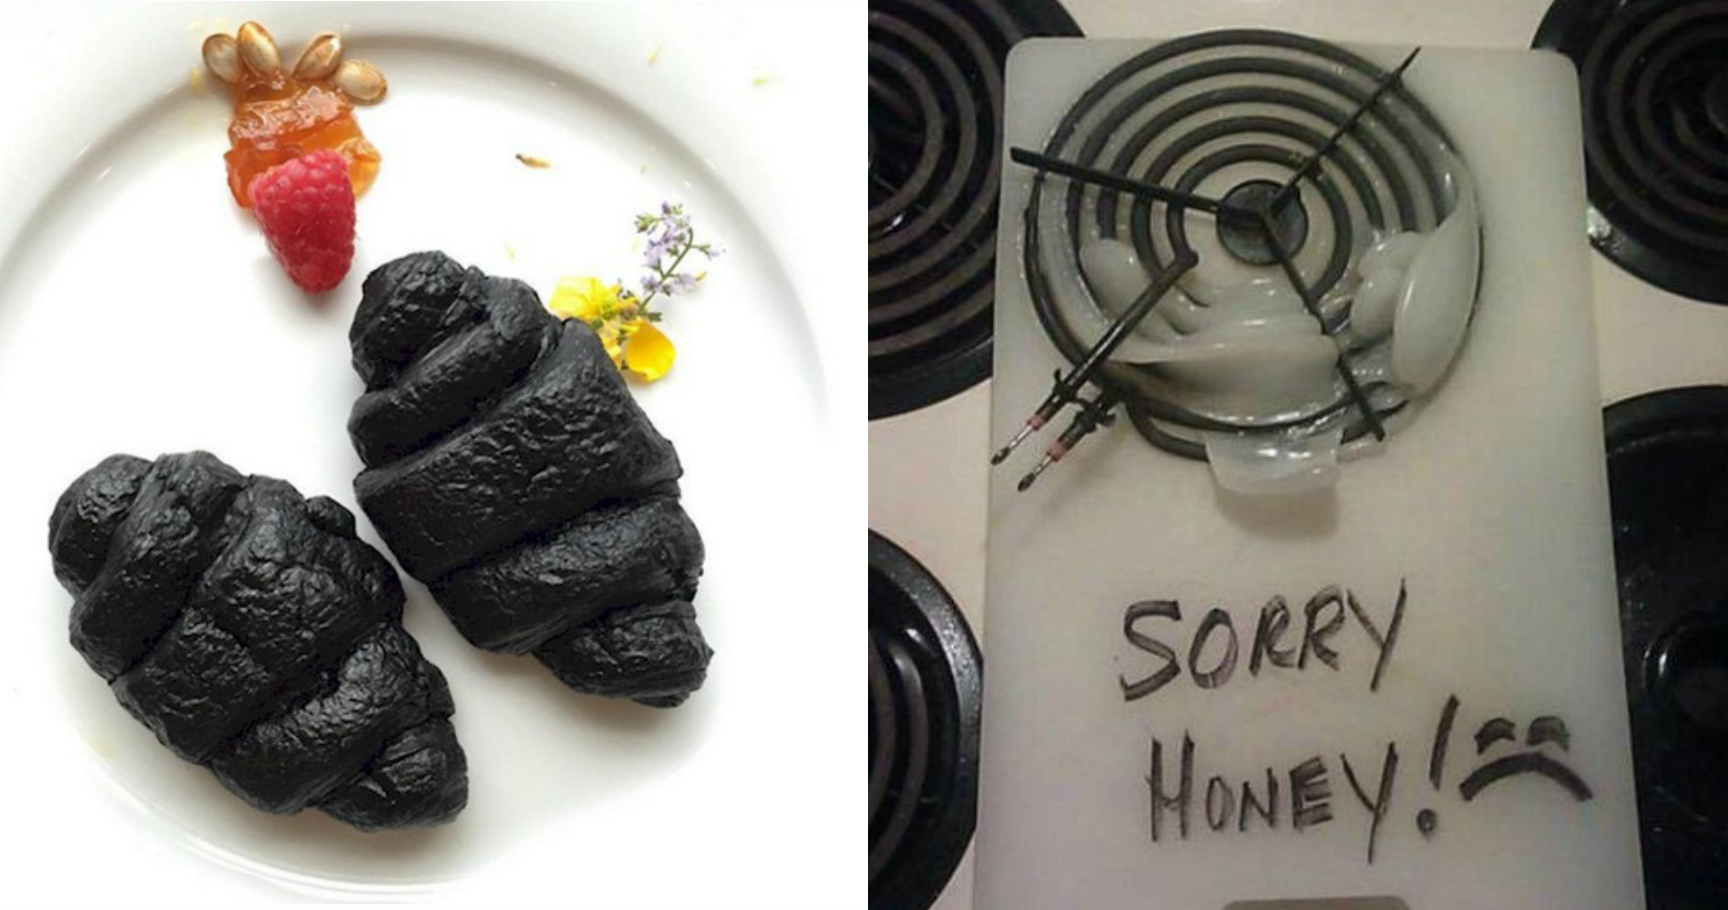 15 Disastrous Cooking Fails From People Who Shouldn't Be Allowed In The Kitchen